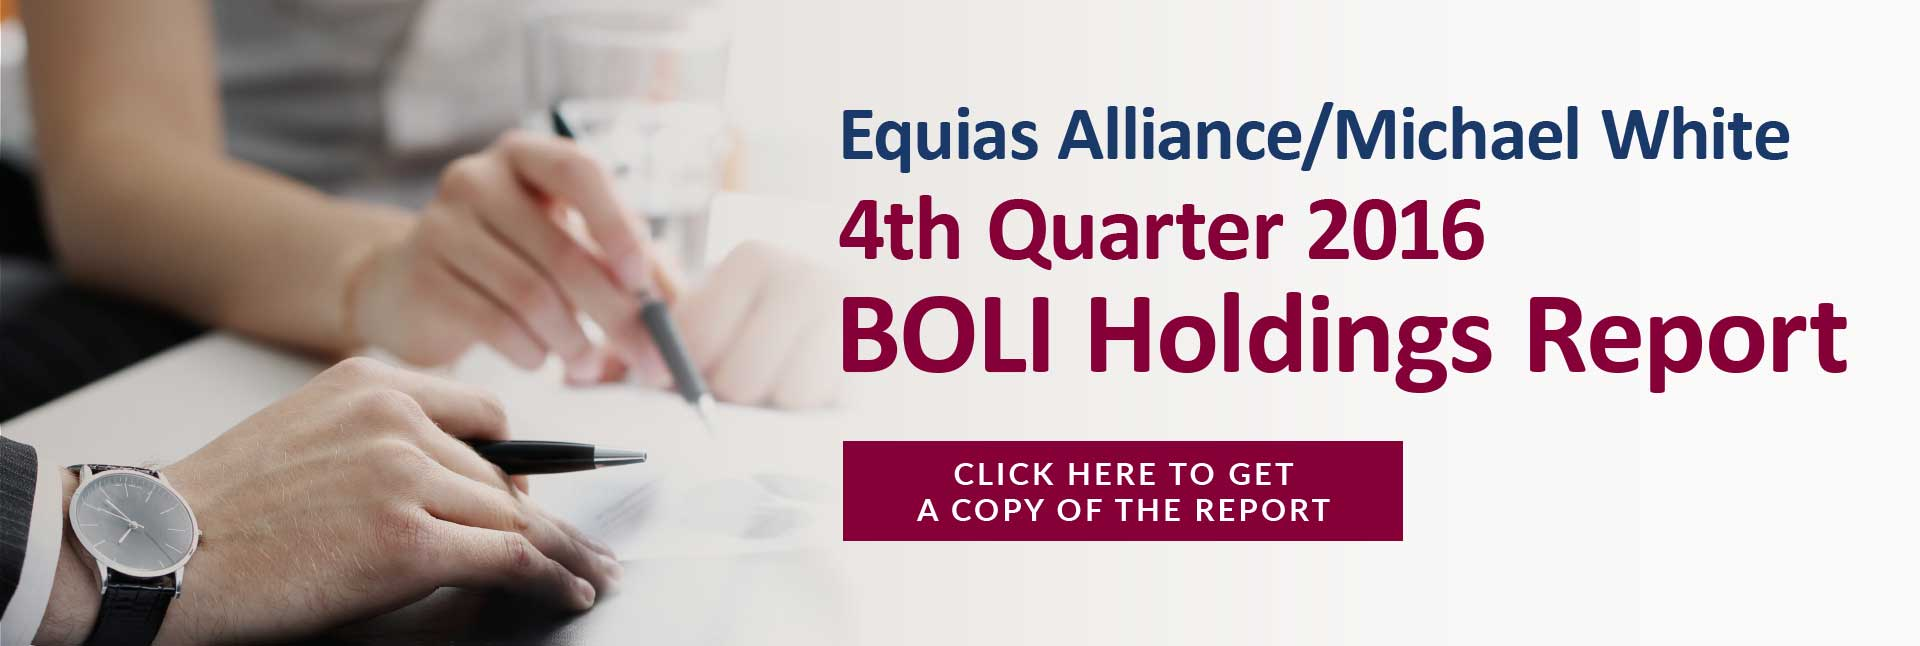 Equias Alliance/Michael White 4th Quarter 2016 BOLI Holdings Report - Click Here to Get a Copy of the Report